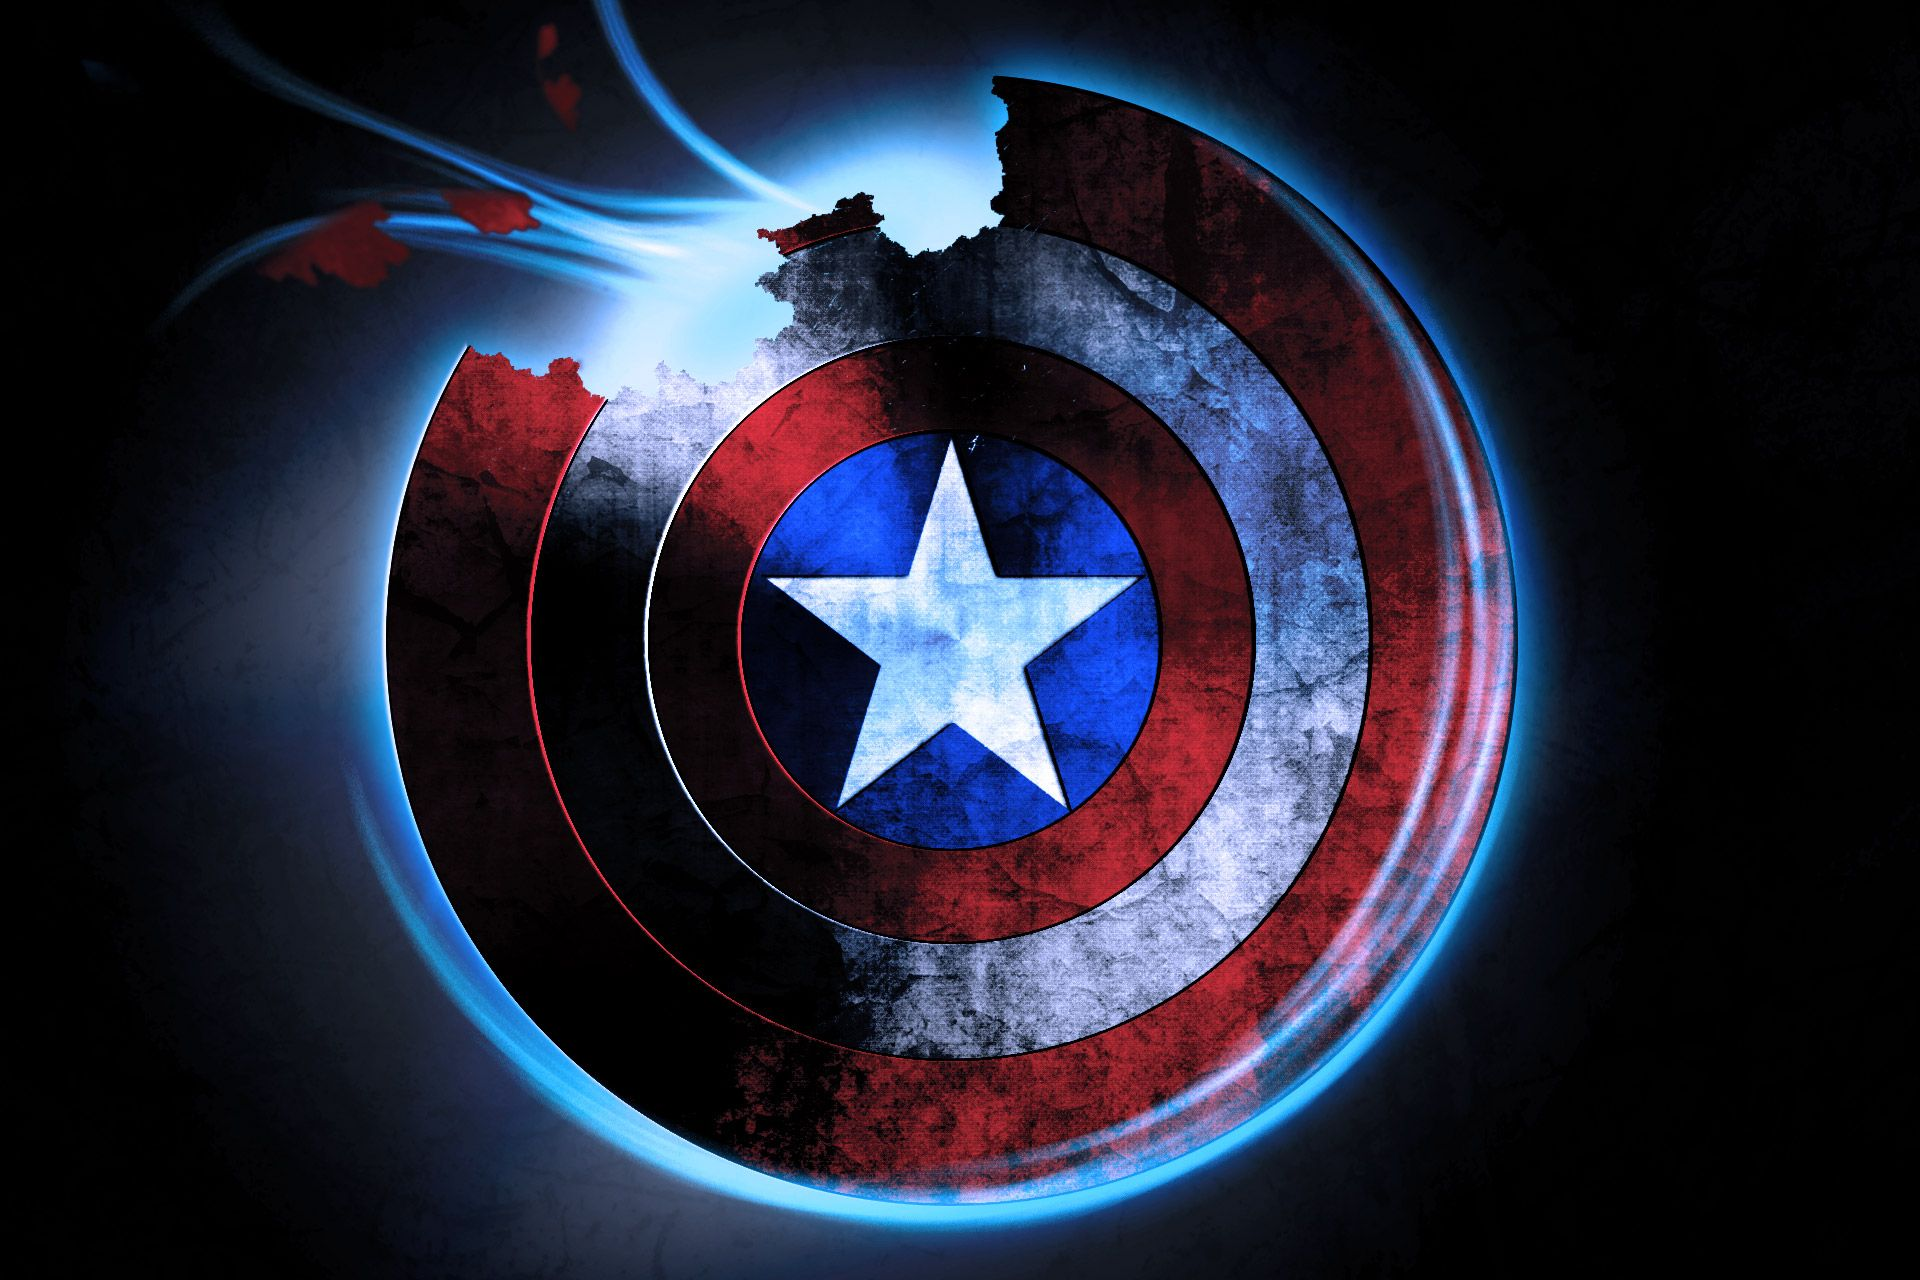 Image for captain america shield hd wallpaper tumblr 10 - Captain america hd images download ...